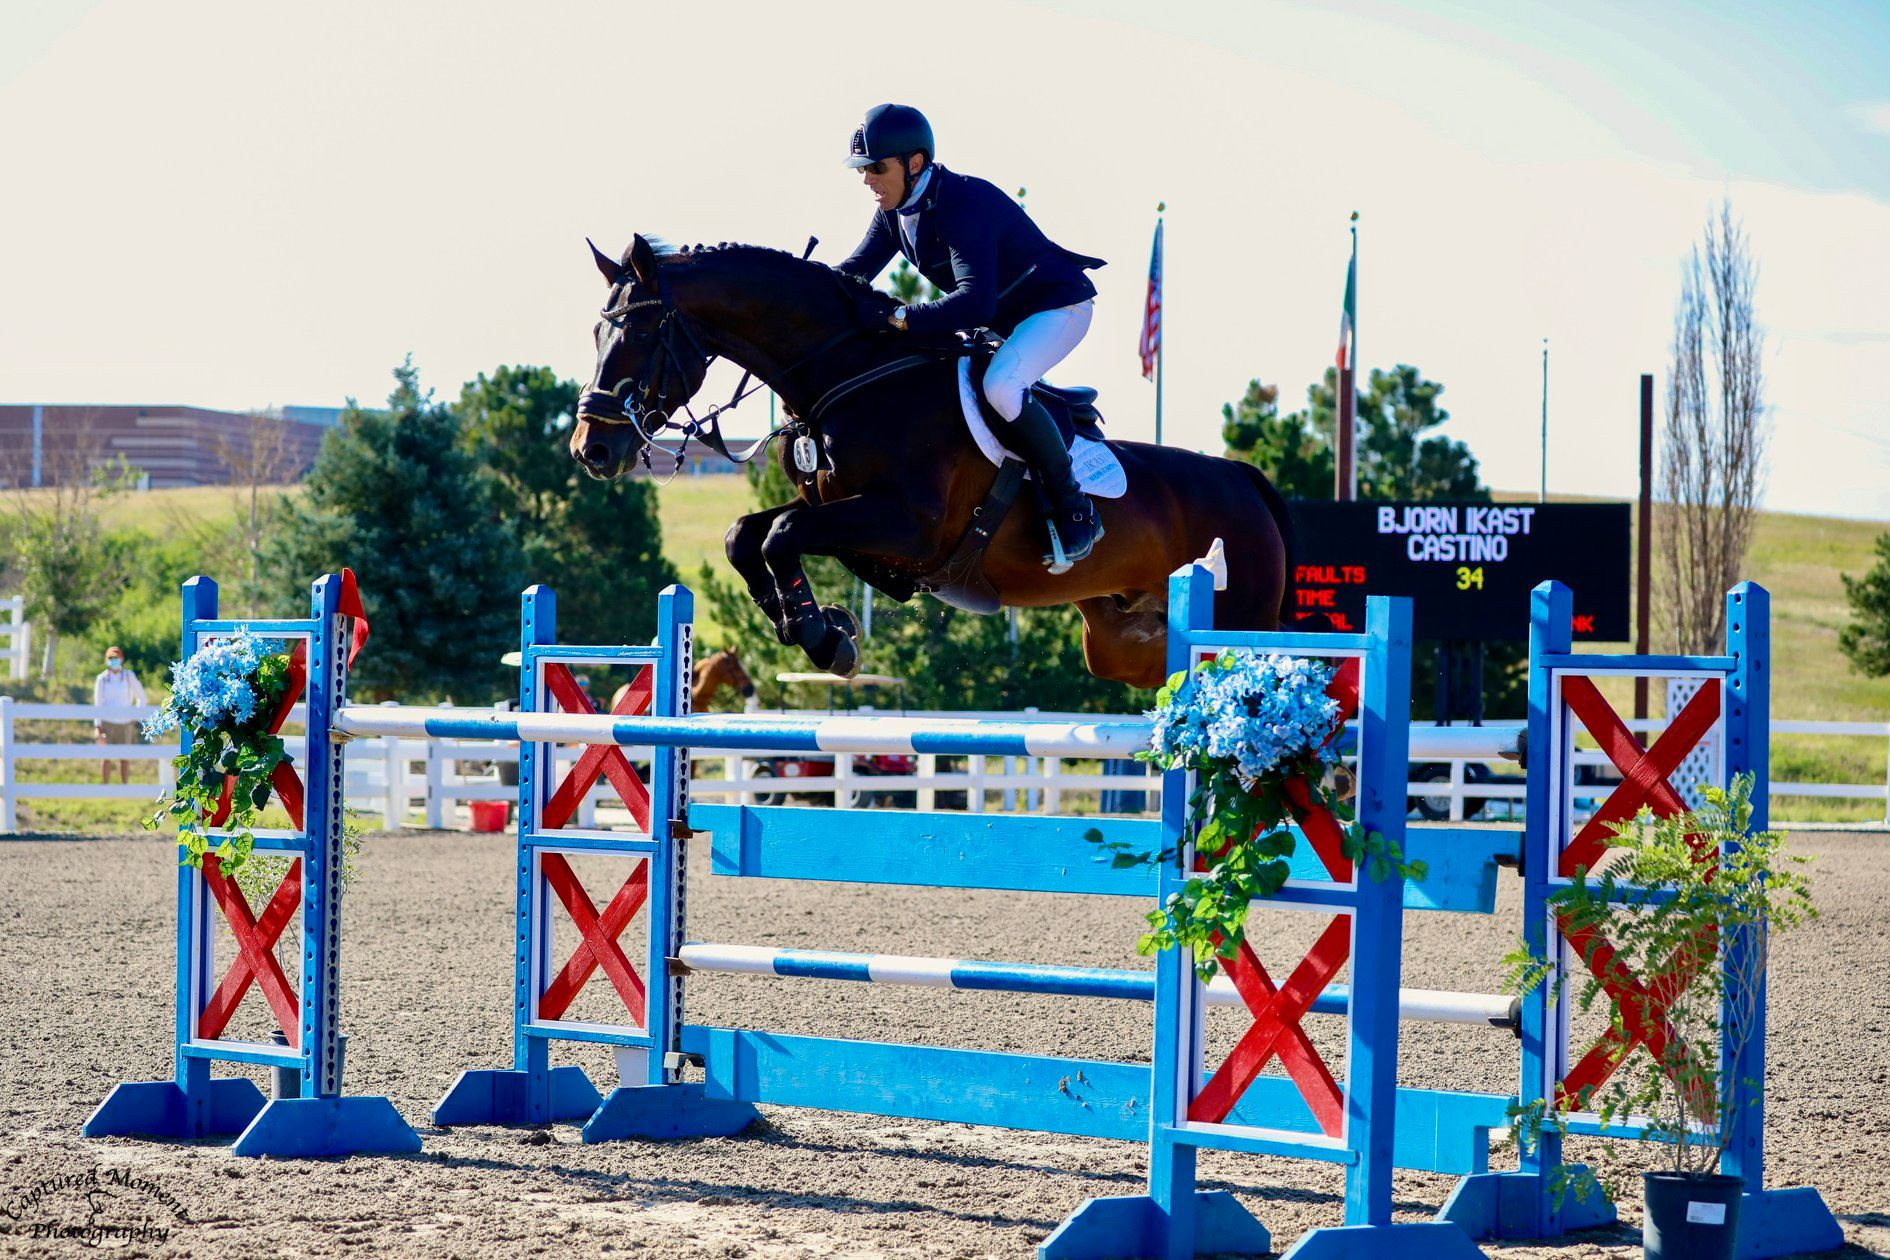 Bjorn Ikast & Castino Cruise to Victory in $35,000 LEG Grand Prix at Summer in the Rockies